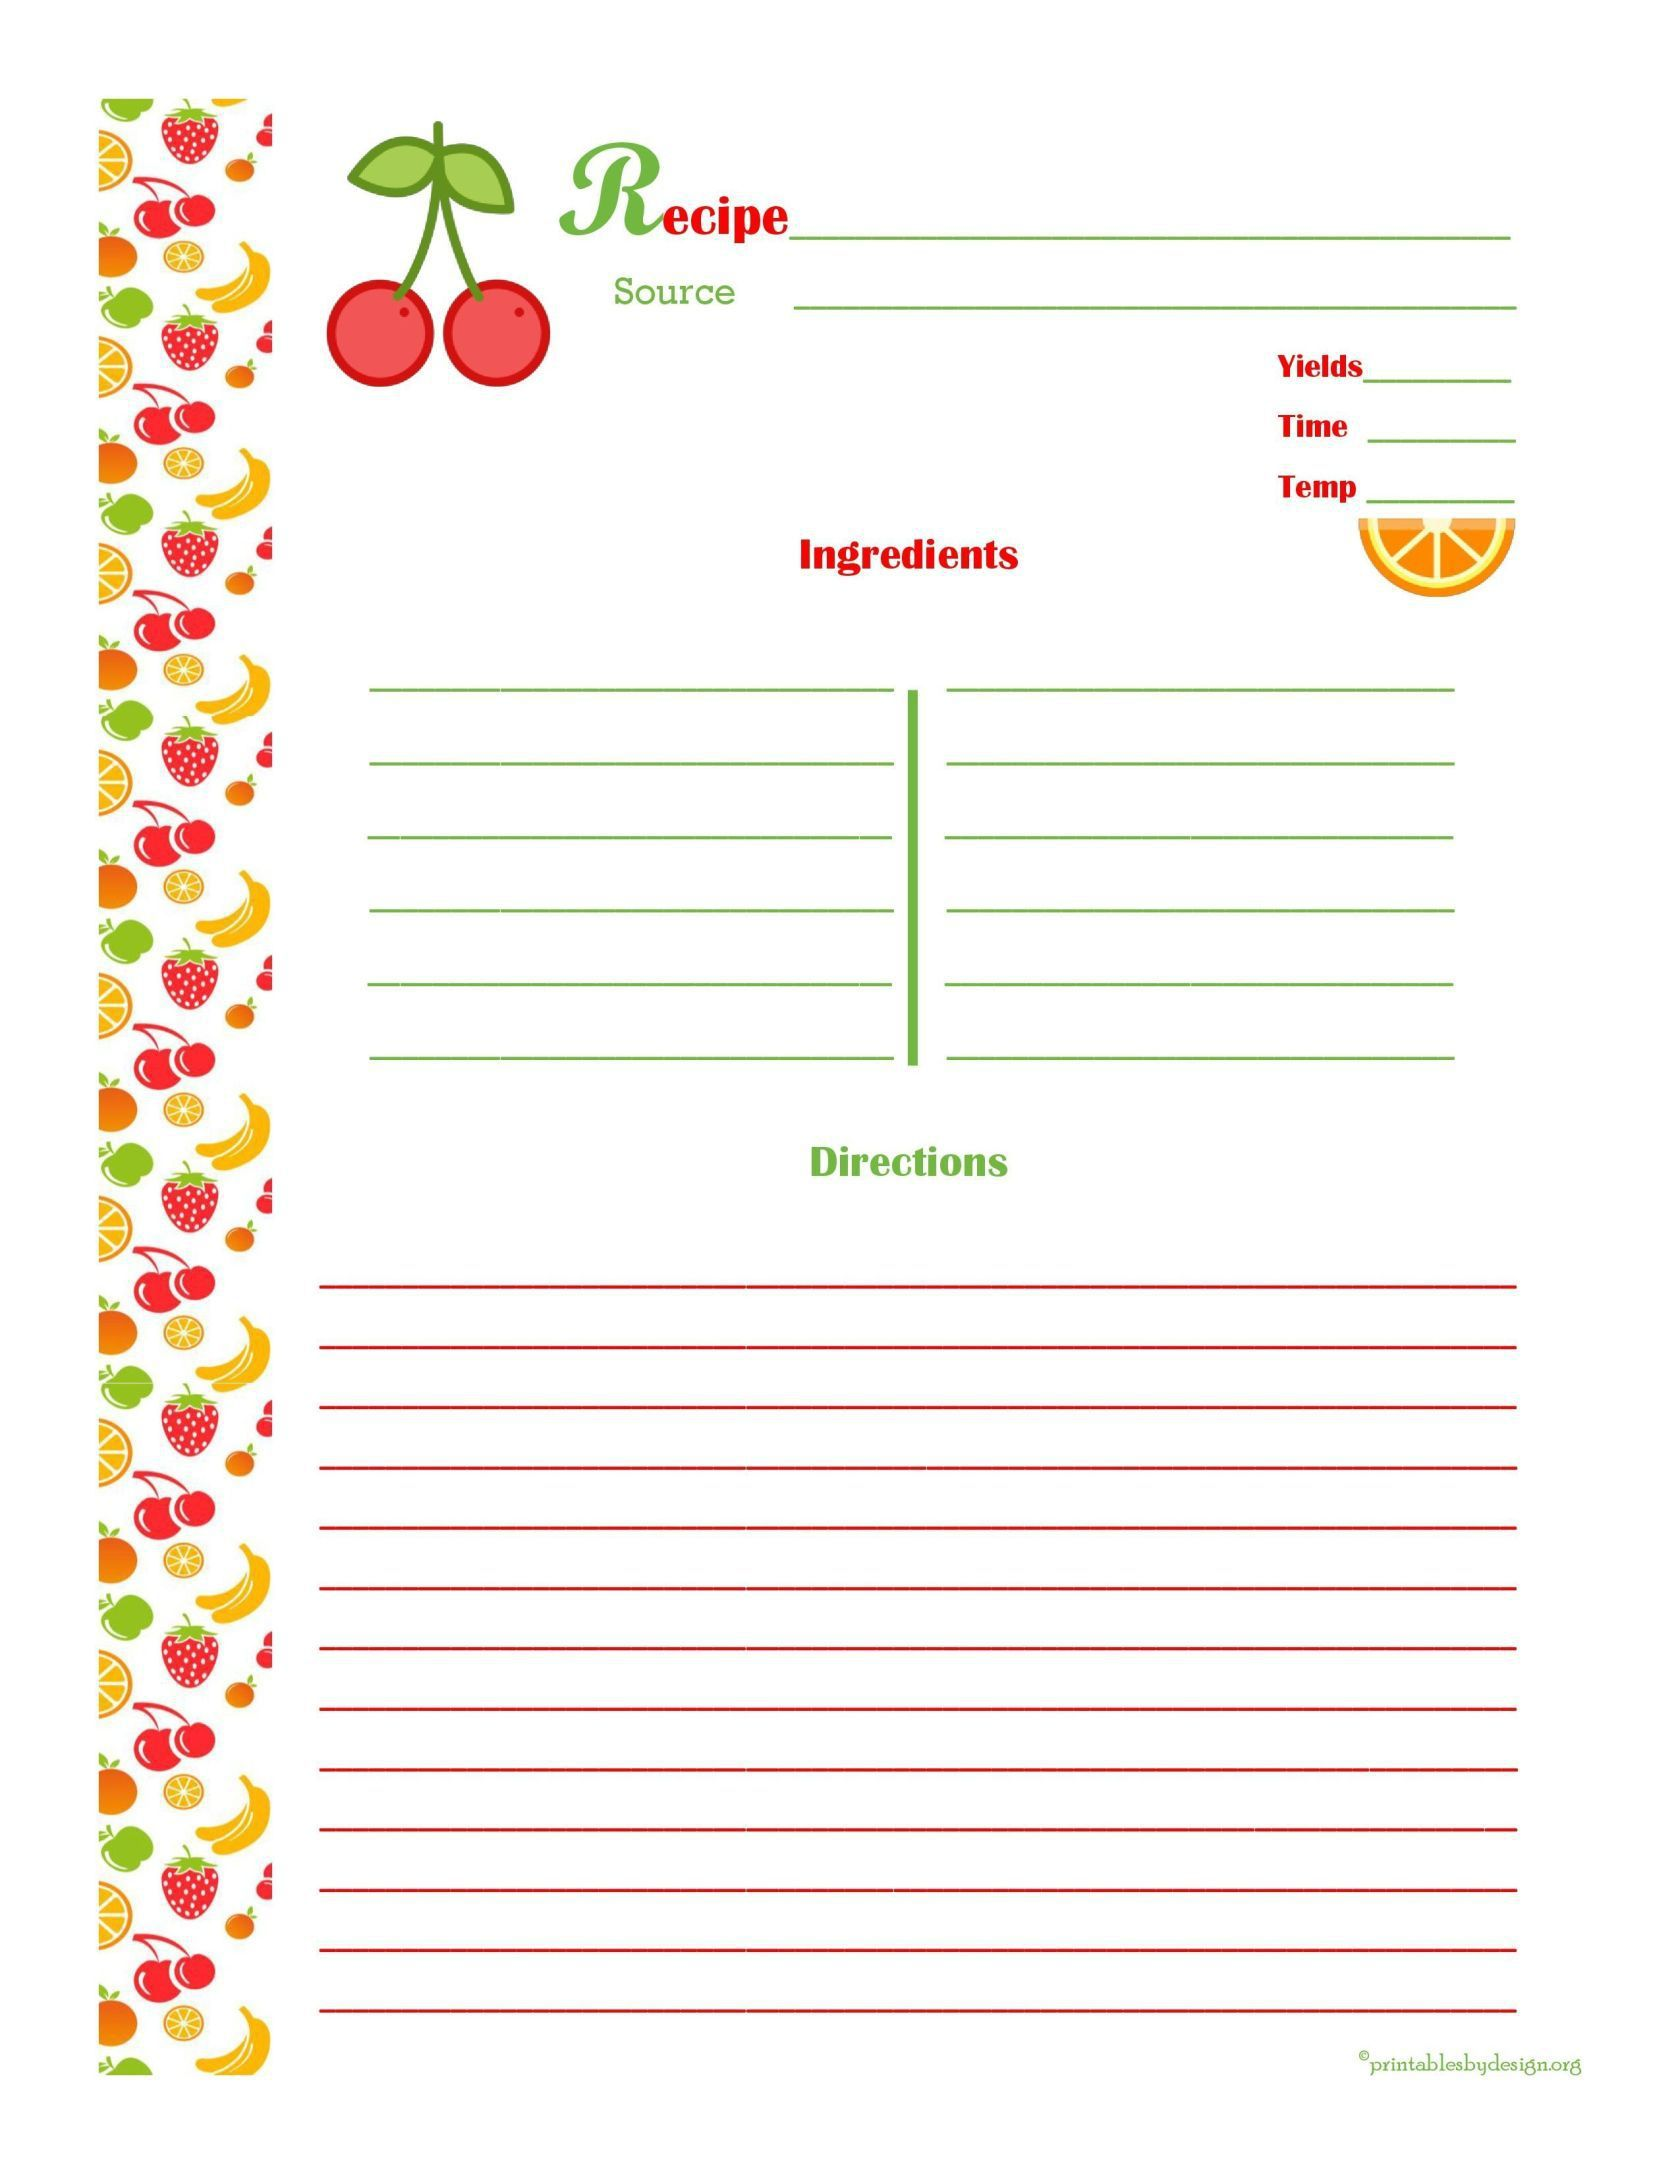 002 Formidable M Word Recipe Template Photo  Microsoft Card 2010 Full PageFull